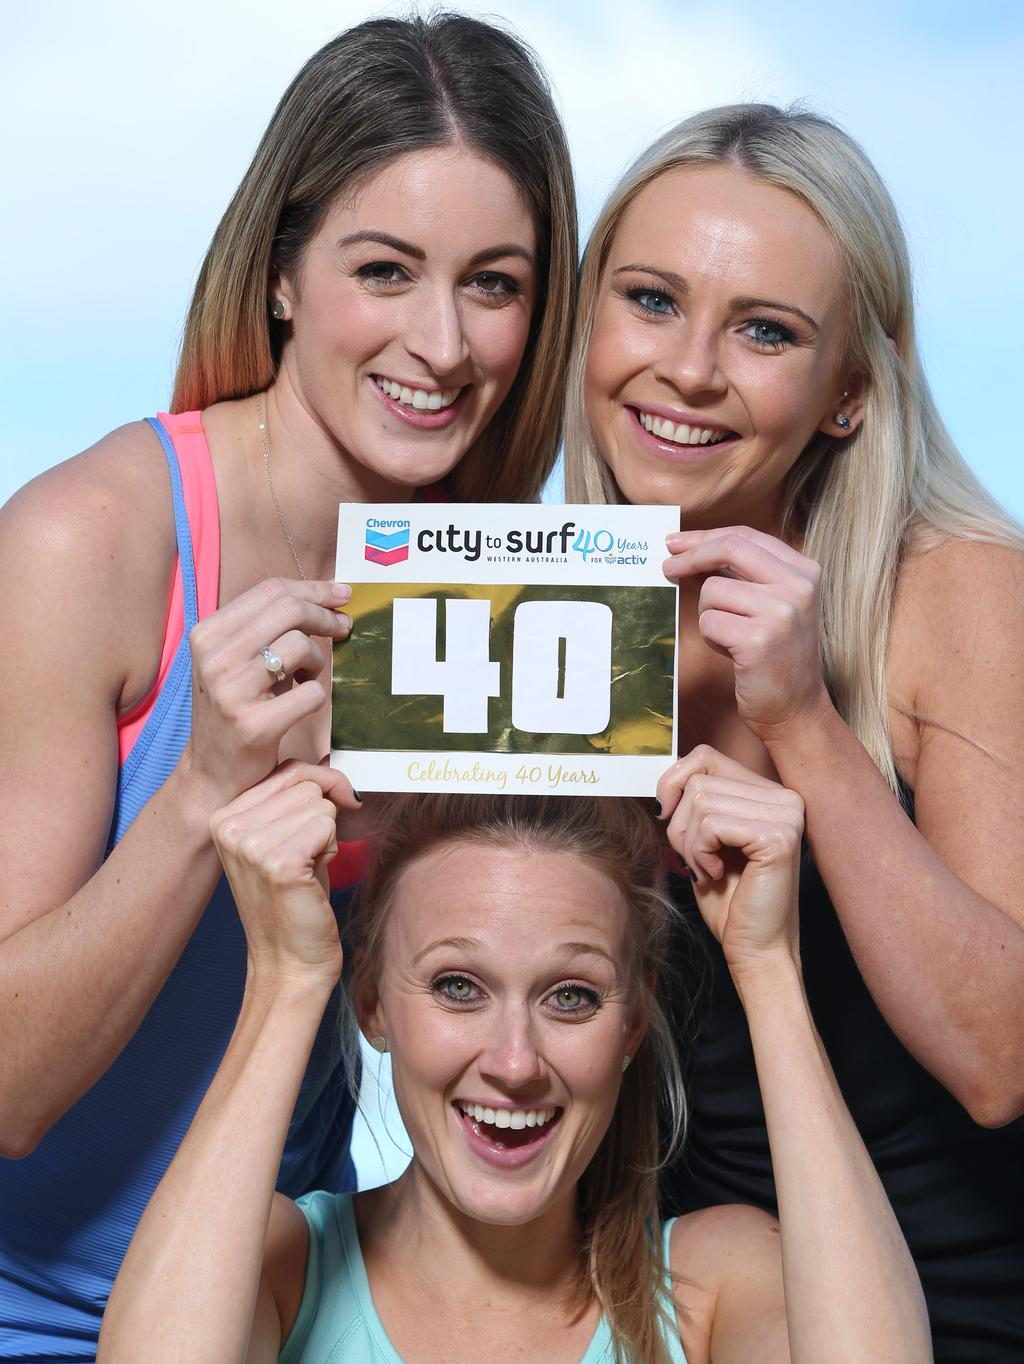 At this year's City to Surf the #40 will be gold and auctioned off for charity to mark the 40th anniversary of the event. Clockwise from top left: Simone Lawler (27), Jess Rudland (26) and Nicole Miller (27).